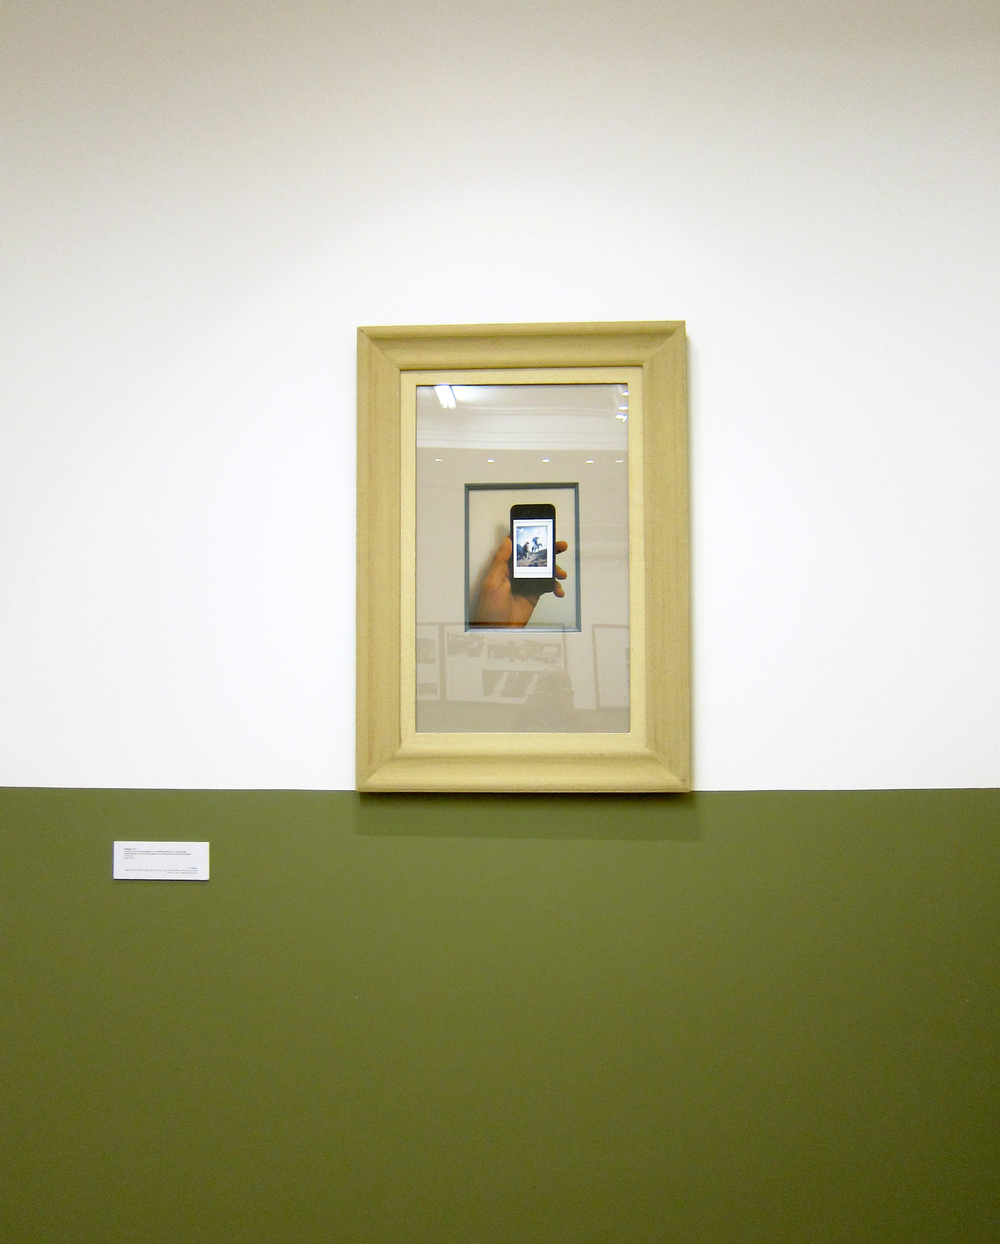 Framed C-print of a photograph of an undated painting by A. Scognamiglo entitled Painter on a Study Trip captured on an iPhone at the Alexandria Museum of Fine Art 100 x 70 cm